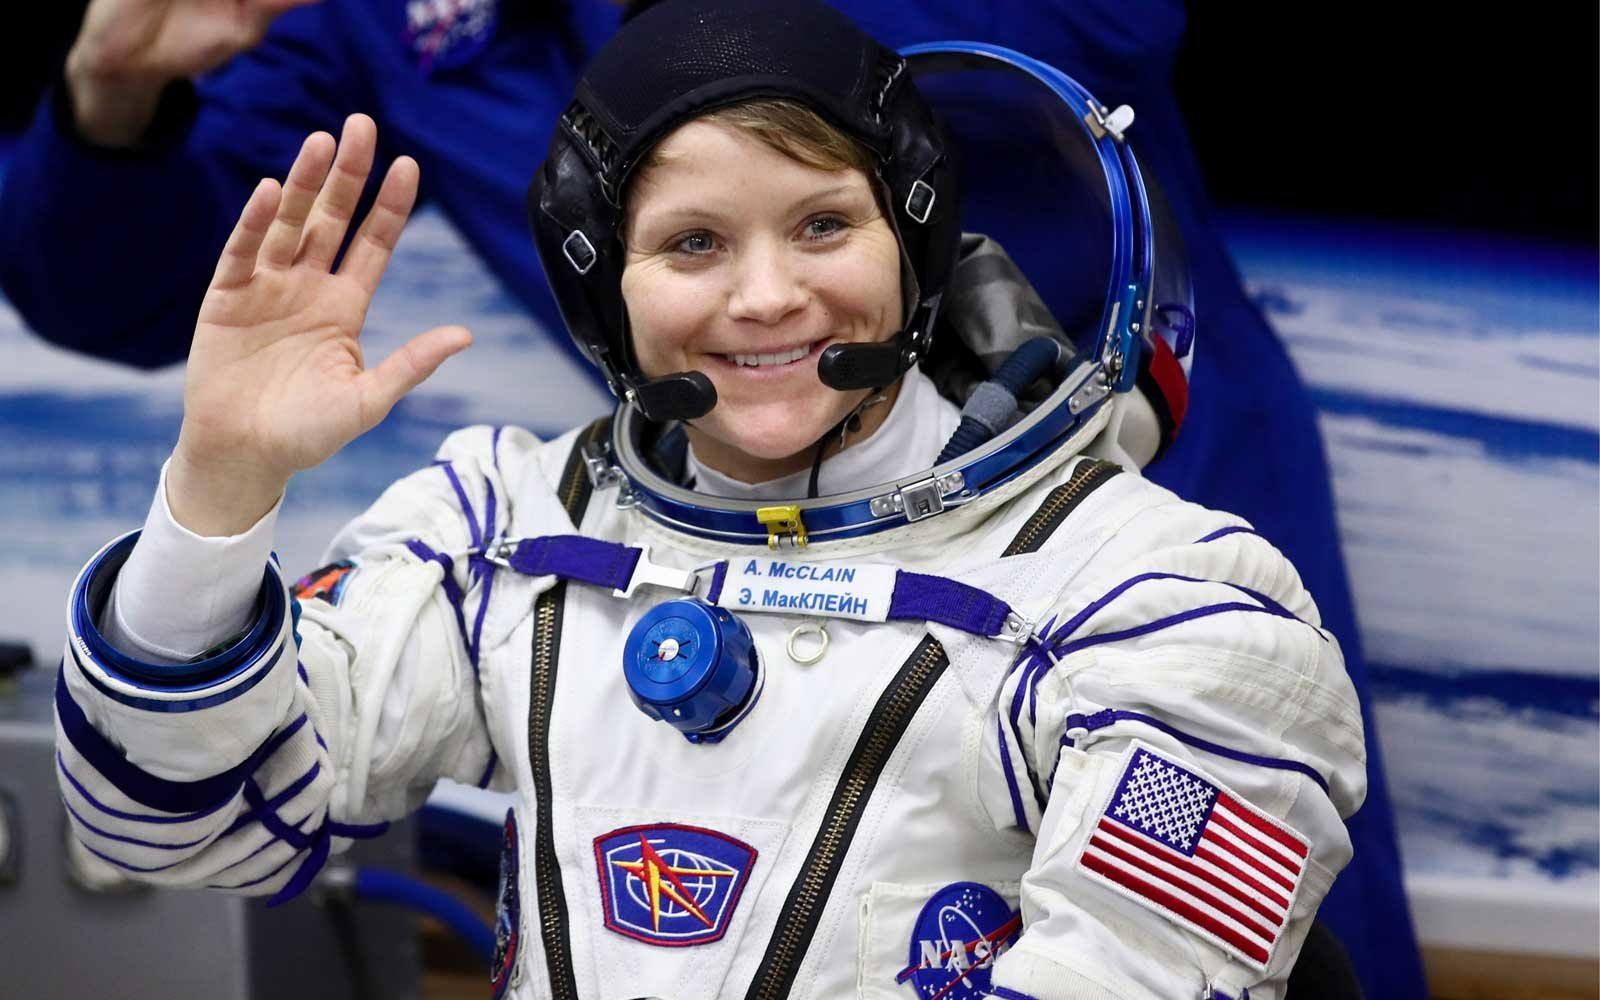 2 astronauts are scheduled for the 1st all-female spacewalk in history